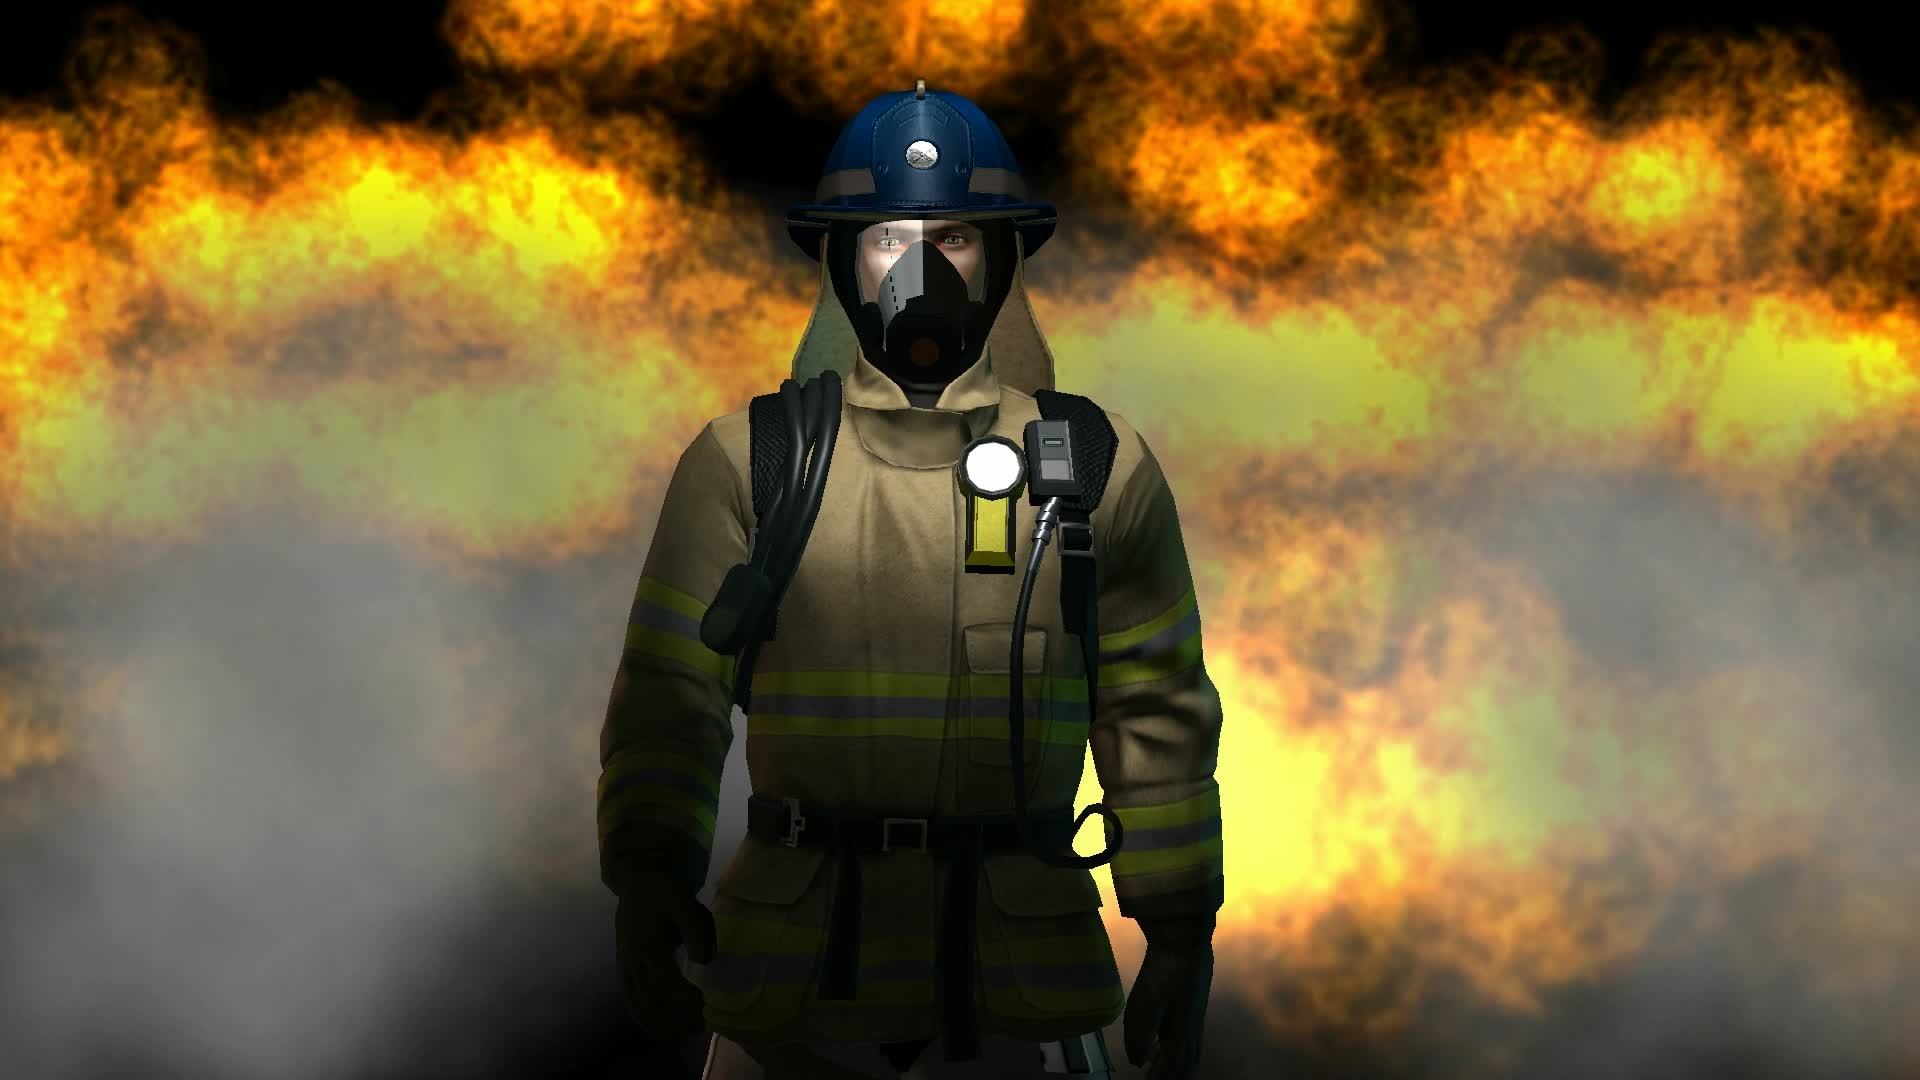 Res: 1920x1080, Fireman Wallpapers Pack Download V.15 - BsnSCB Graphics